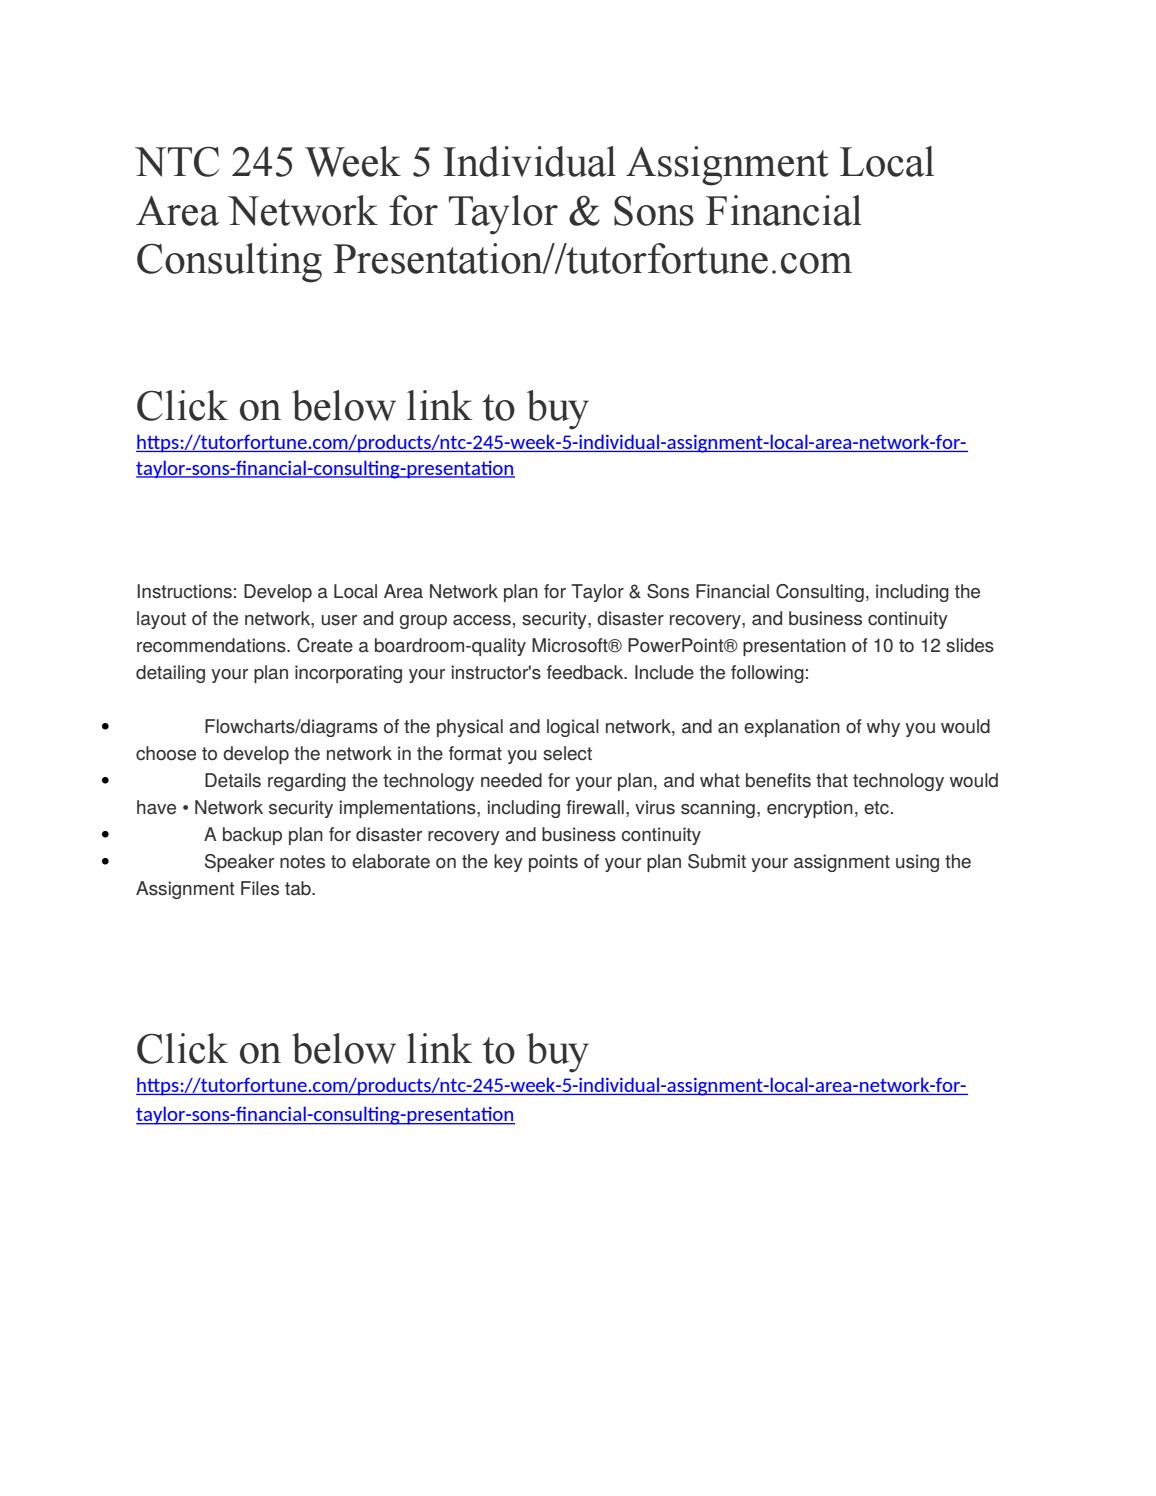 NTC 245 Week 5 Individual Assignment Local Area Network for